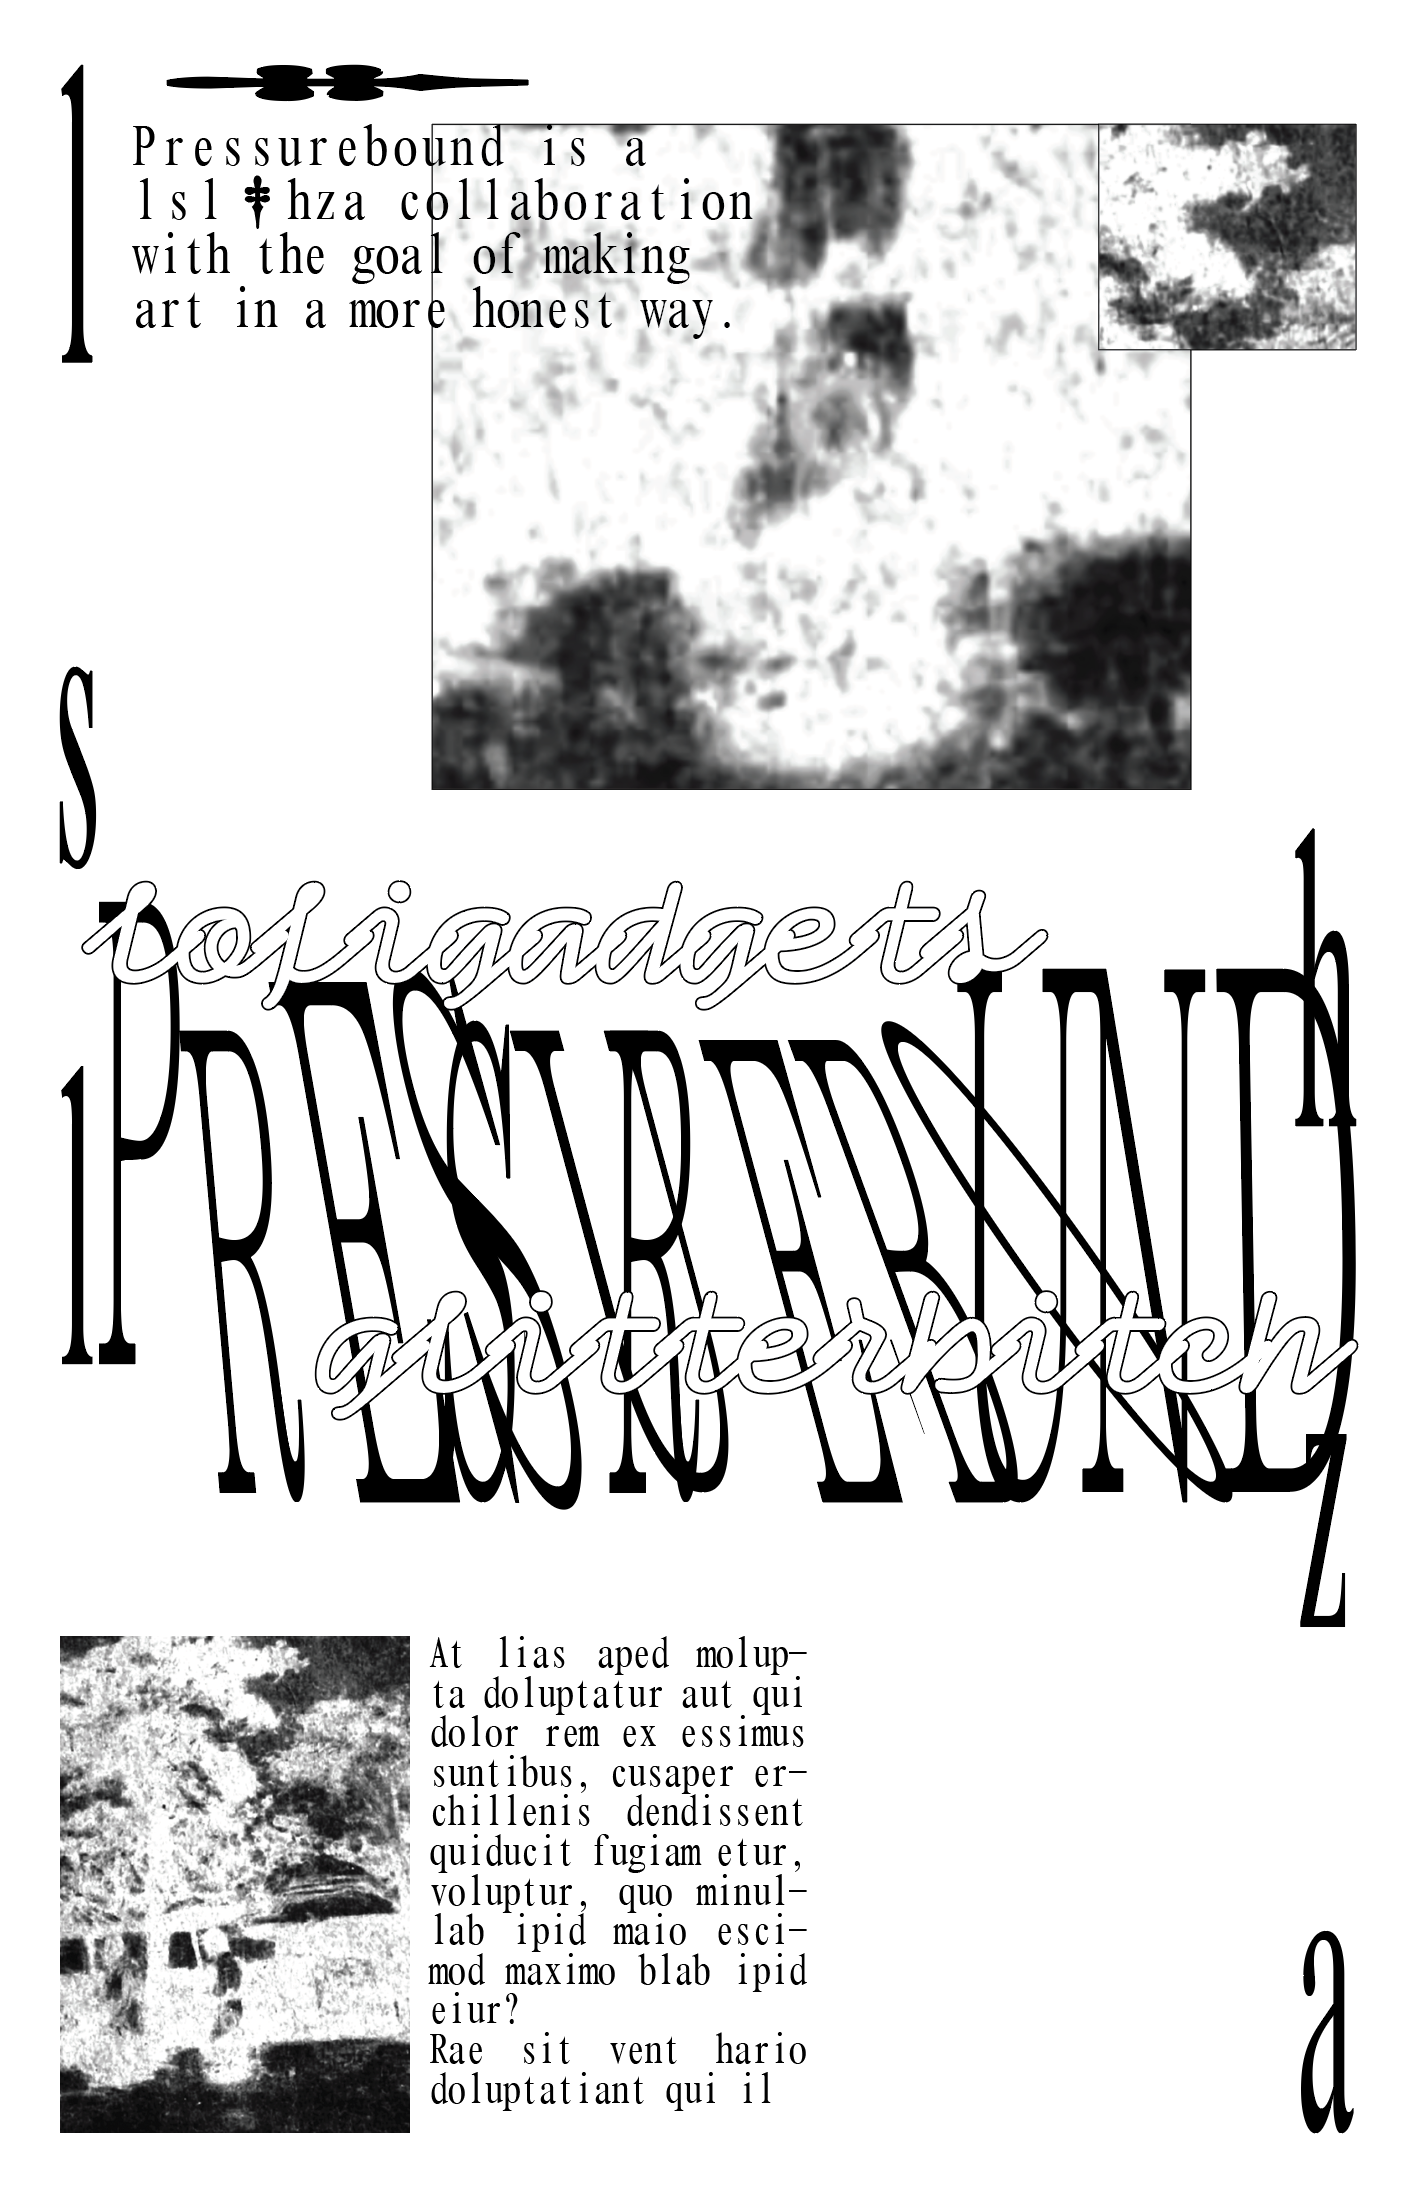 Screenshot of a draft of a poster, in black text/images on a white background. 'PRESSUREBOUND' stretched tall and narrow, positioned in the center of the composition, with some letters slanted to the left and right, intersecting and overlapping with one another. To its top left and bottom right are 'lsl' and 'hza' respectively, similarly stretched thin and long. At its top left and bottom right, 'PRESSUREBOUND' is intertwined with the words 'lofigadgets' and 'glitterbitch', both in a bubbly font. To the top and bottom of the composition are crops of an unidentifiable image and filler text, of which the top left paragraph reads 'Pressurebound is a lsl & hza collaboration with the goal of making art in a more honest way'. (The & is replaced with a dagger symbol.)